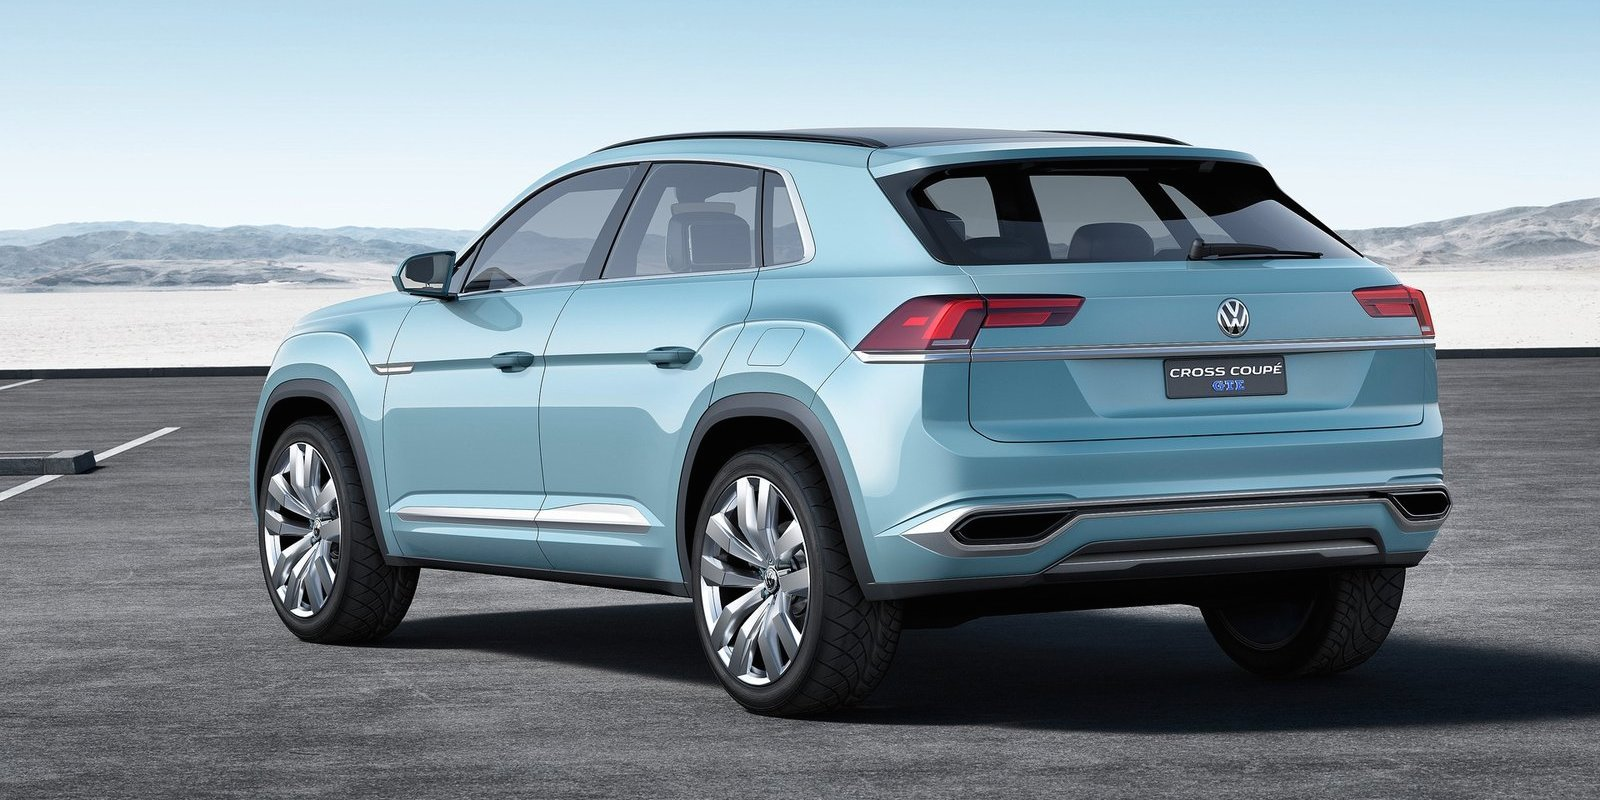 Volkswagen Australia Confirms New Suvs Cross Coupe Sub Tiguan Suv Coming Photos Caradvice